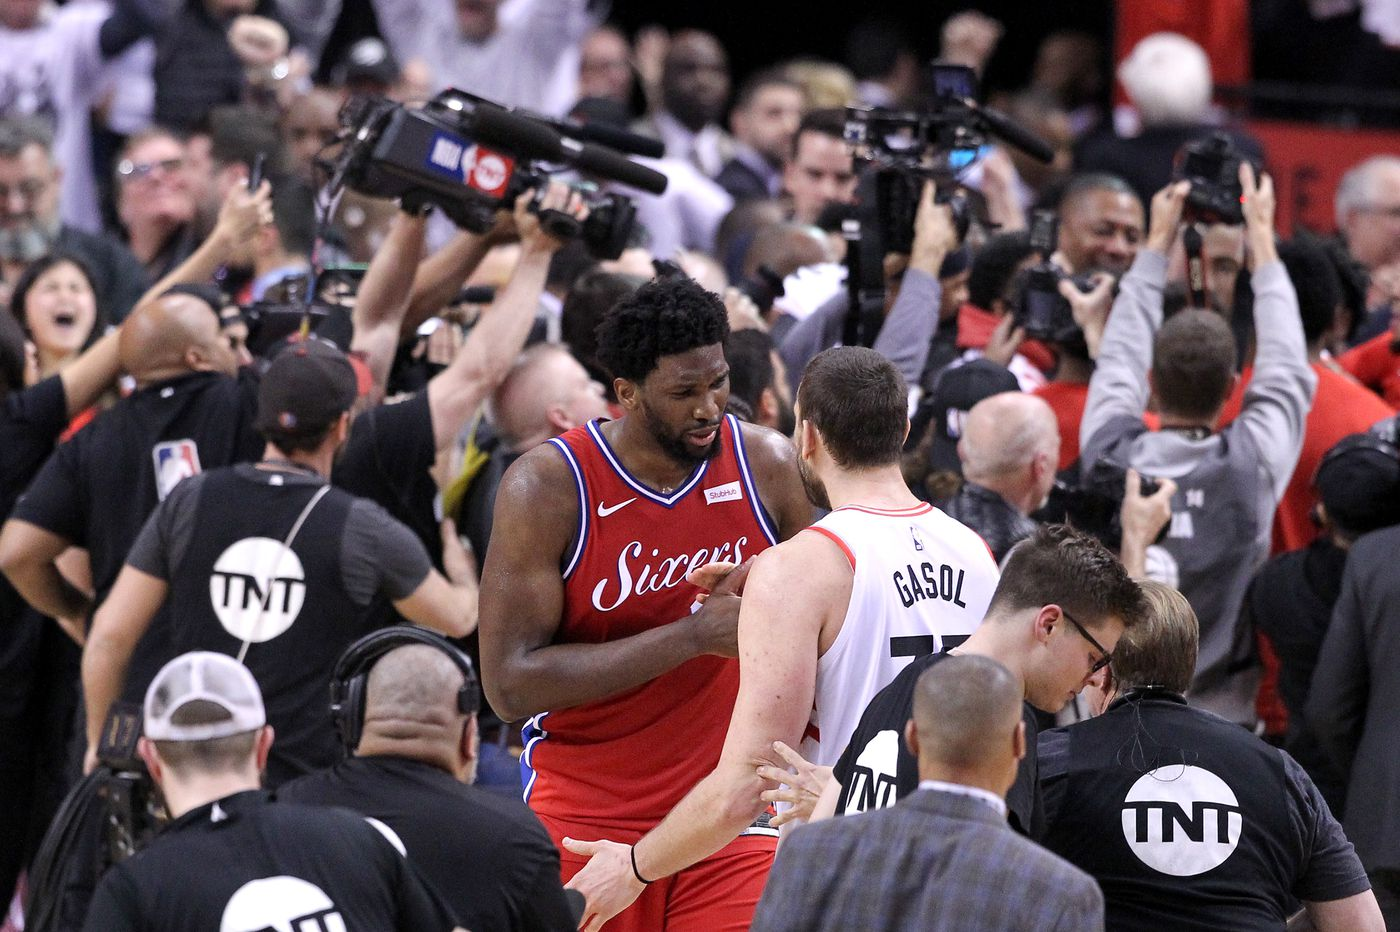 Joel Embiid's tears caught on television as Sixers fans mourn loss to Raptors